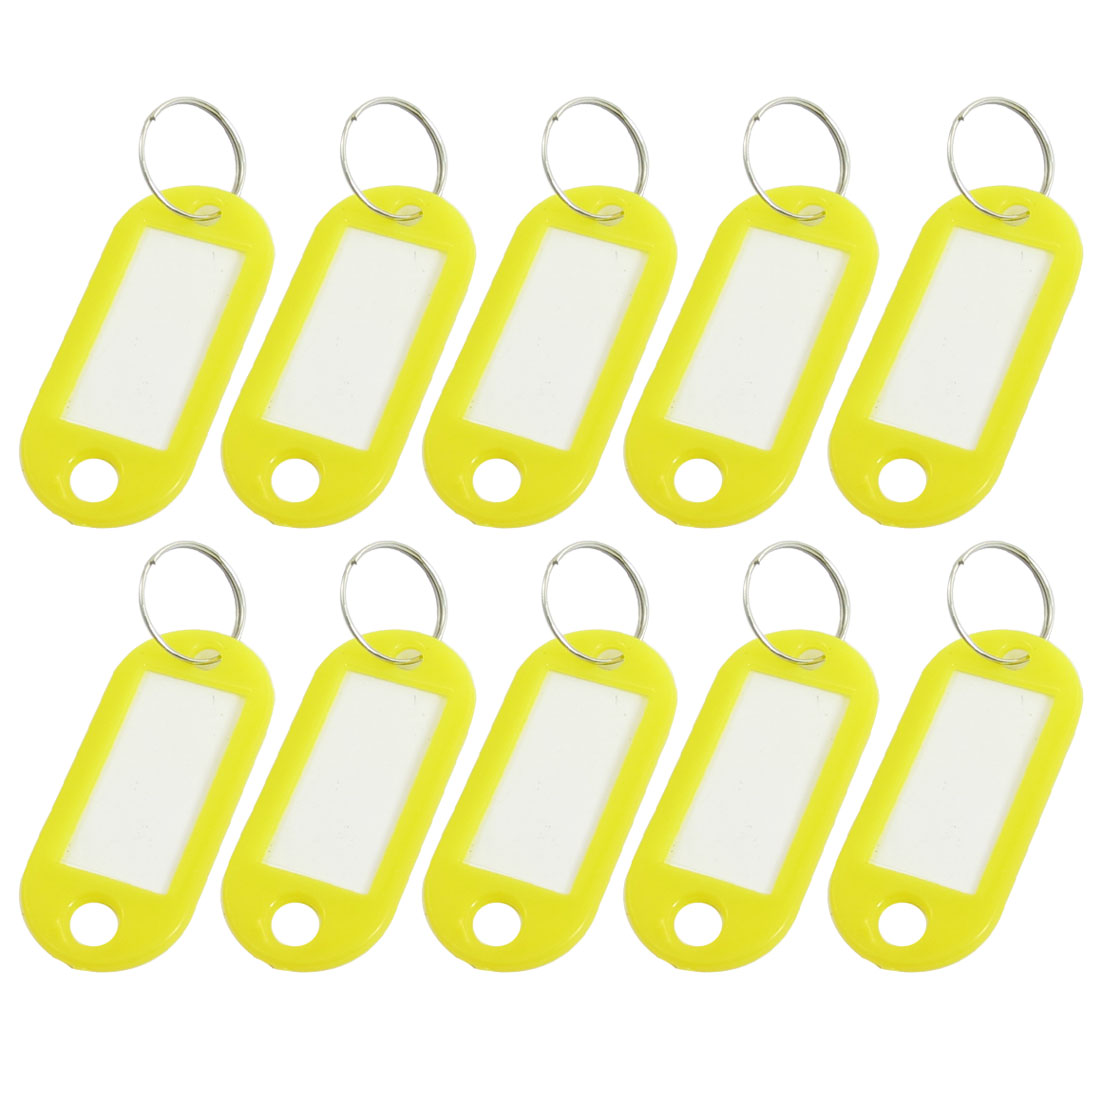 10PCS Yellow Plastic Key ID Label Name Card Tags Split Ring Keyring